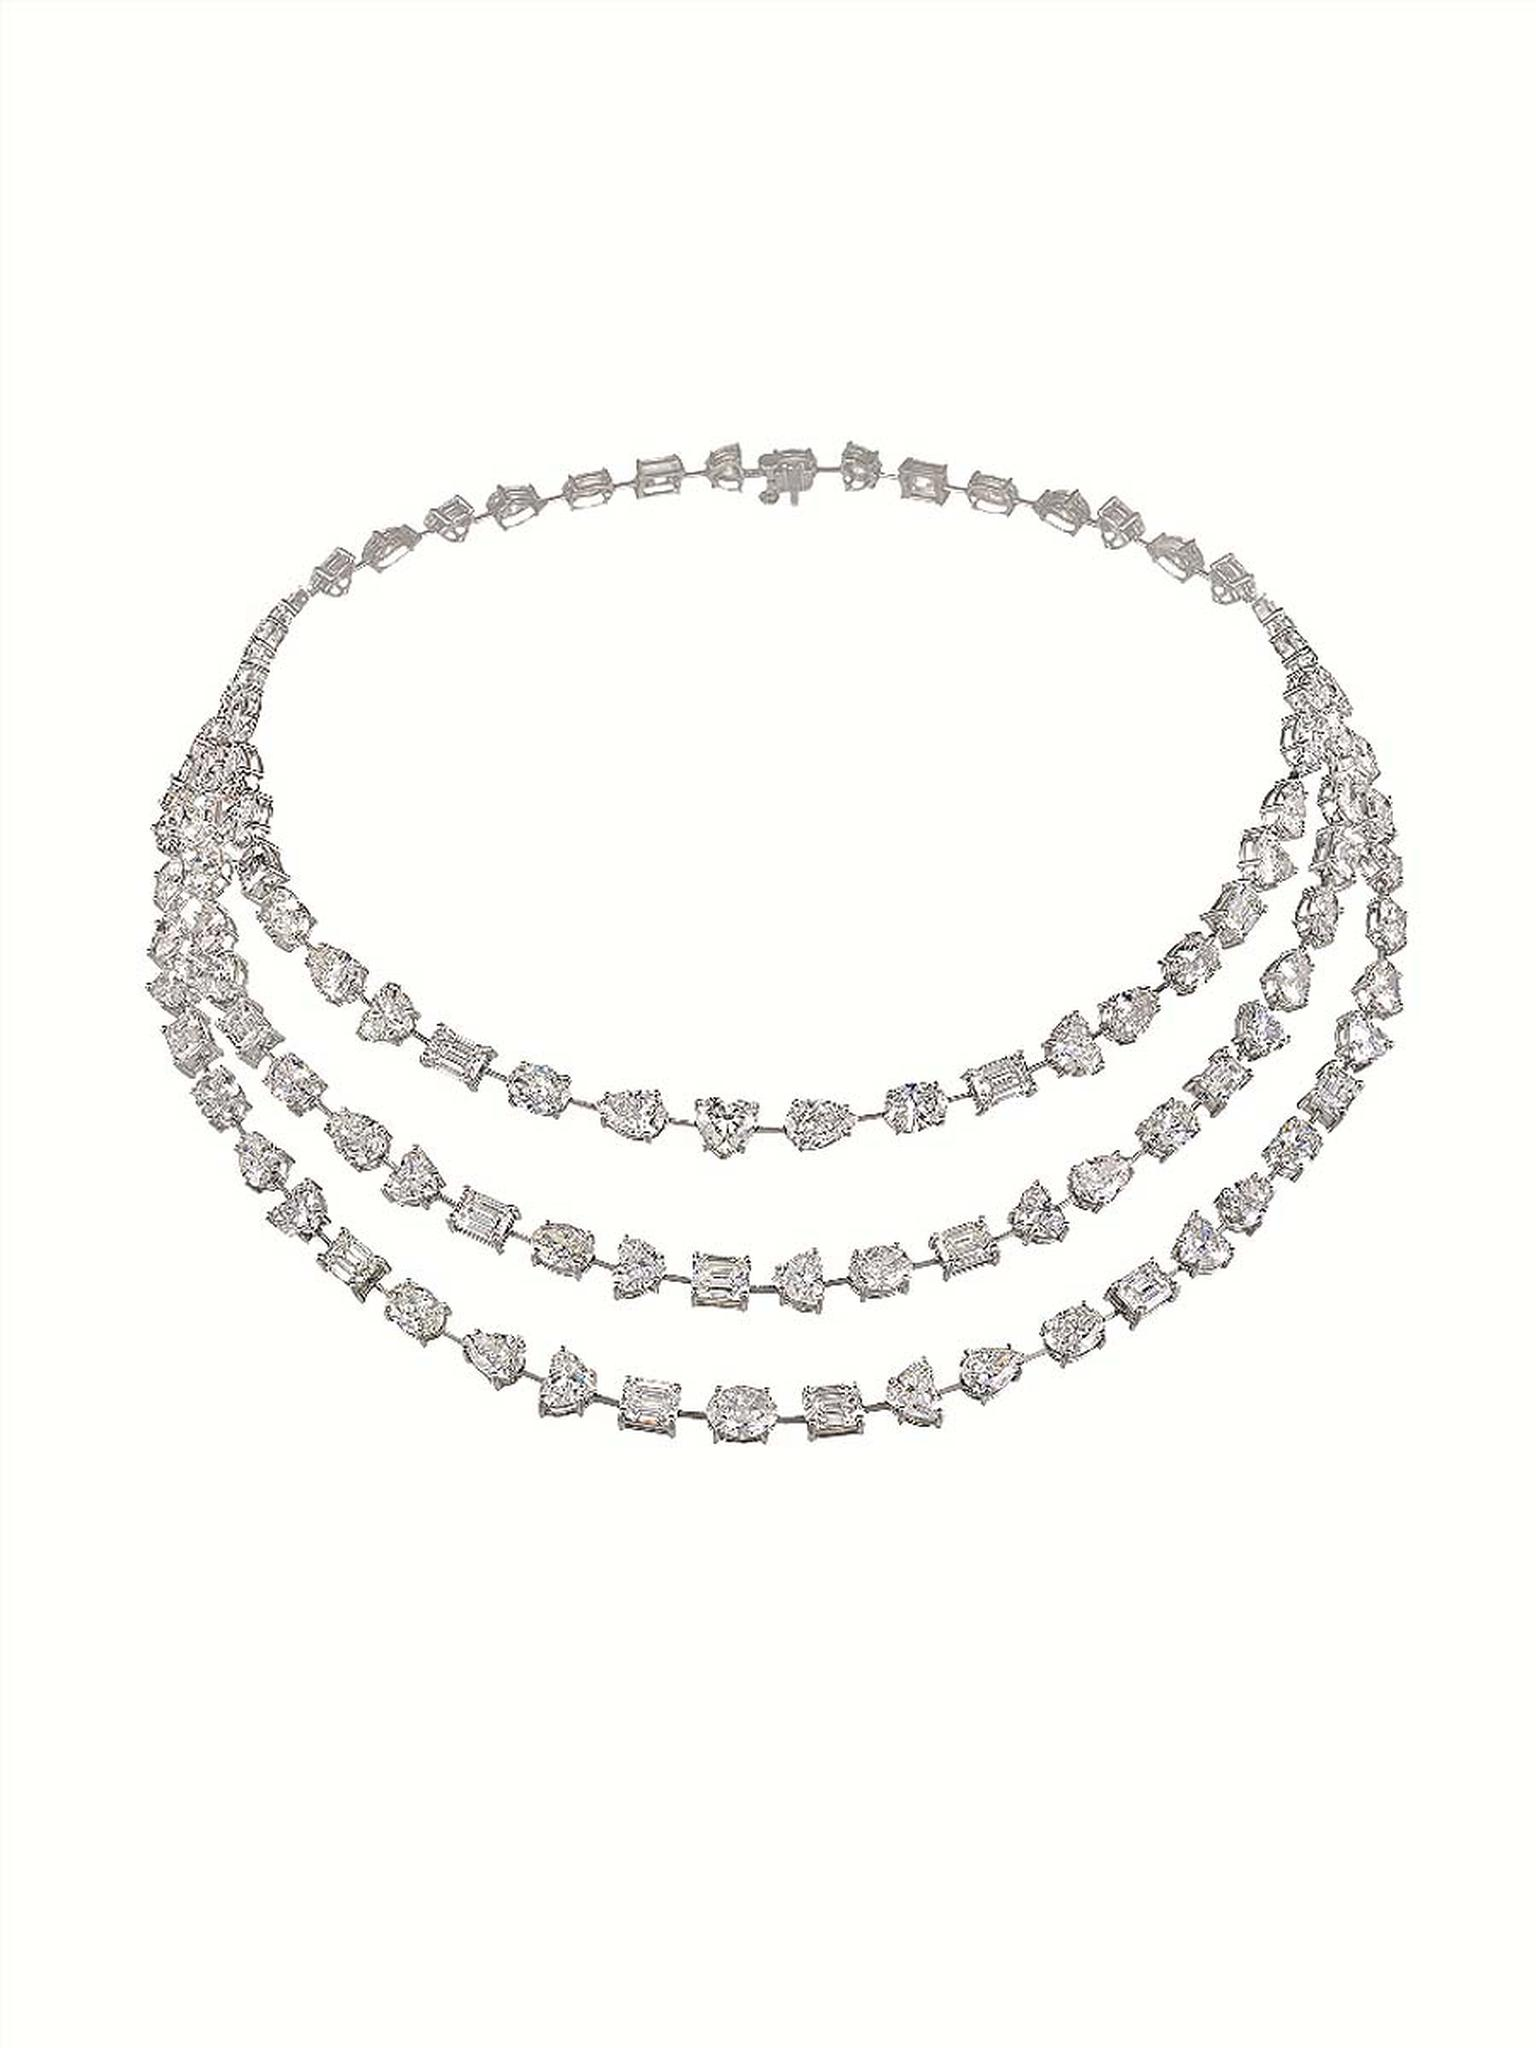 ChopardDianaFilmjewels001.jpg